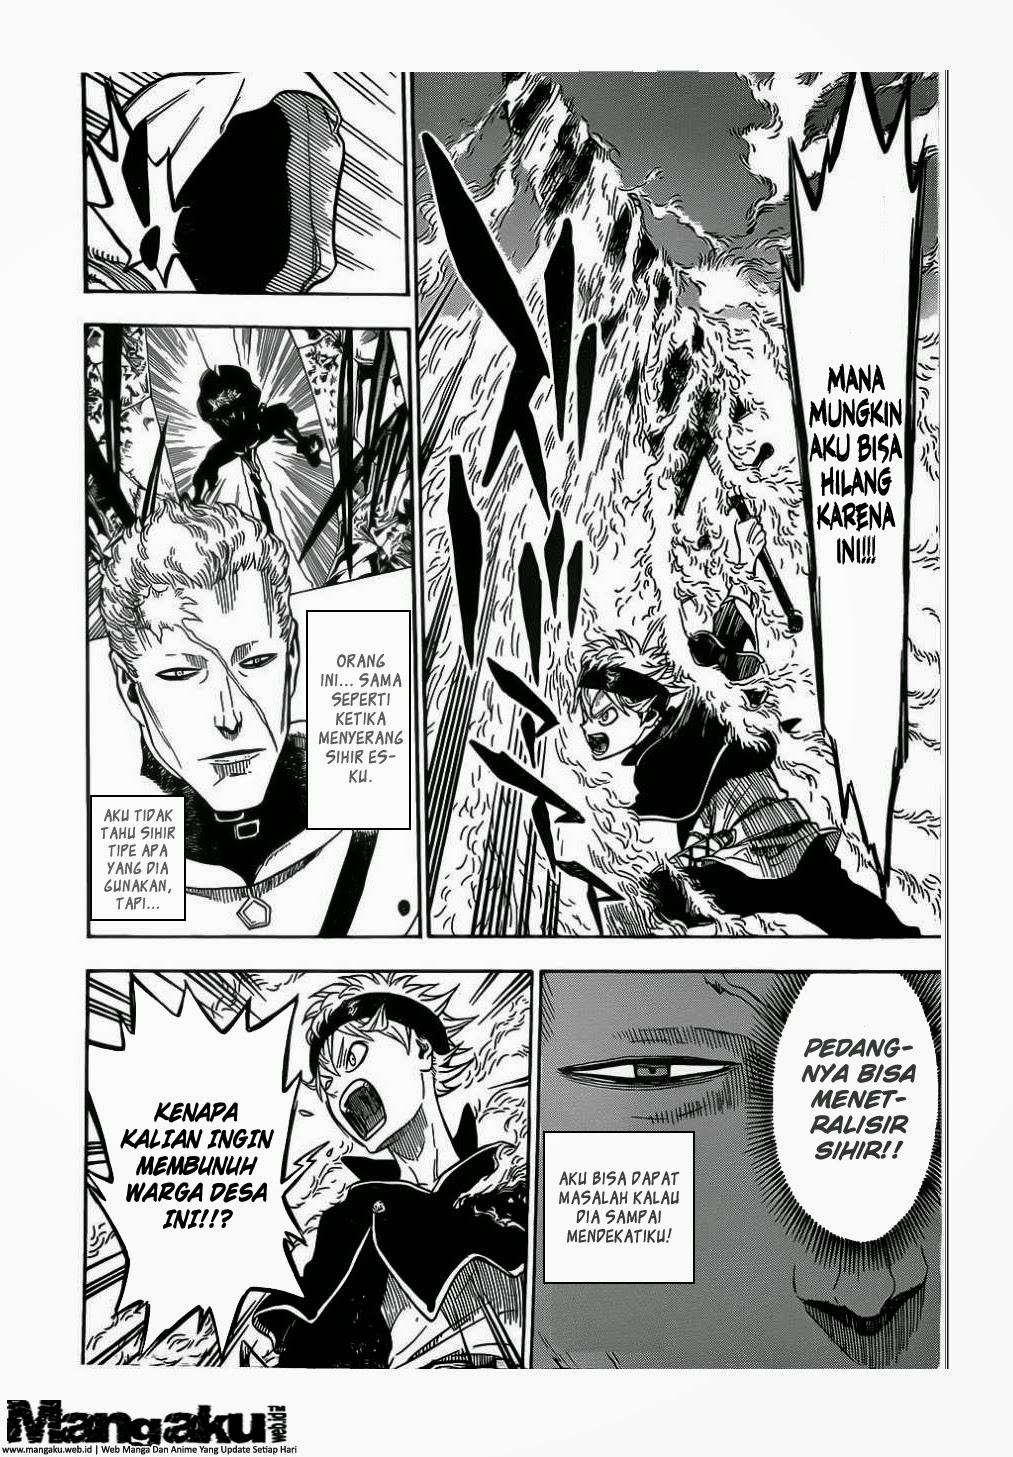 Black Clover chapter 7 : Monster